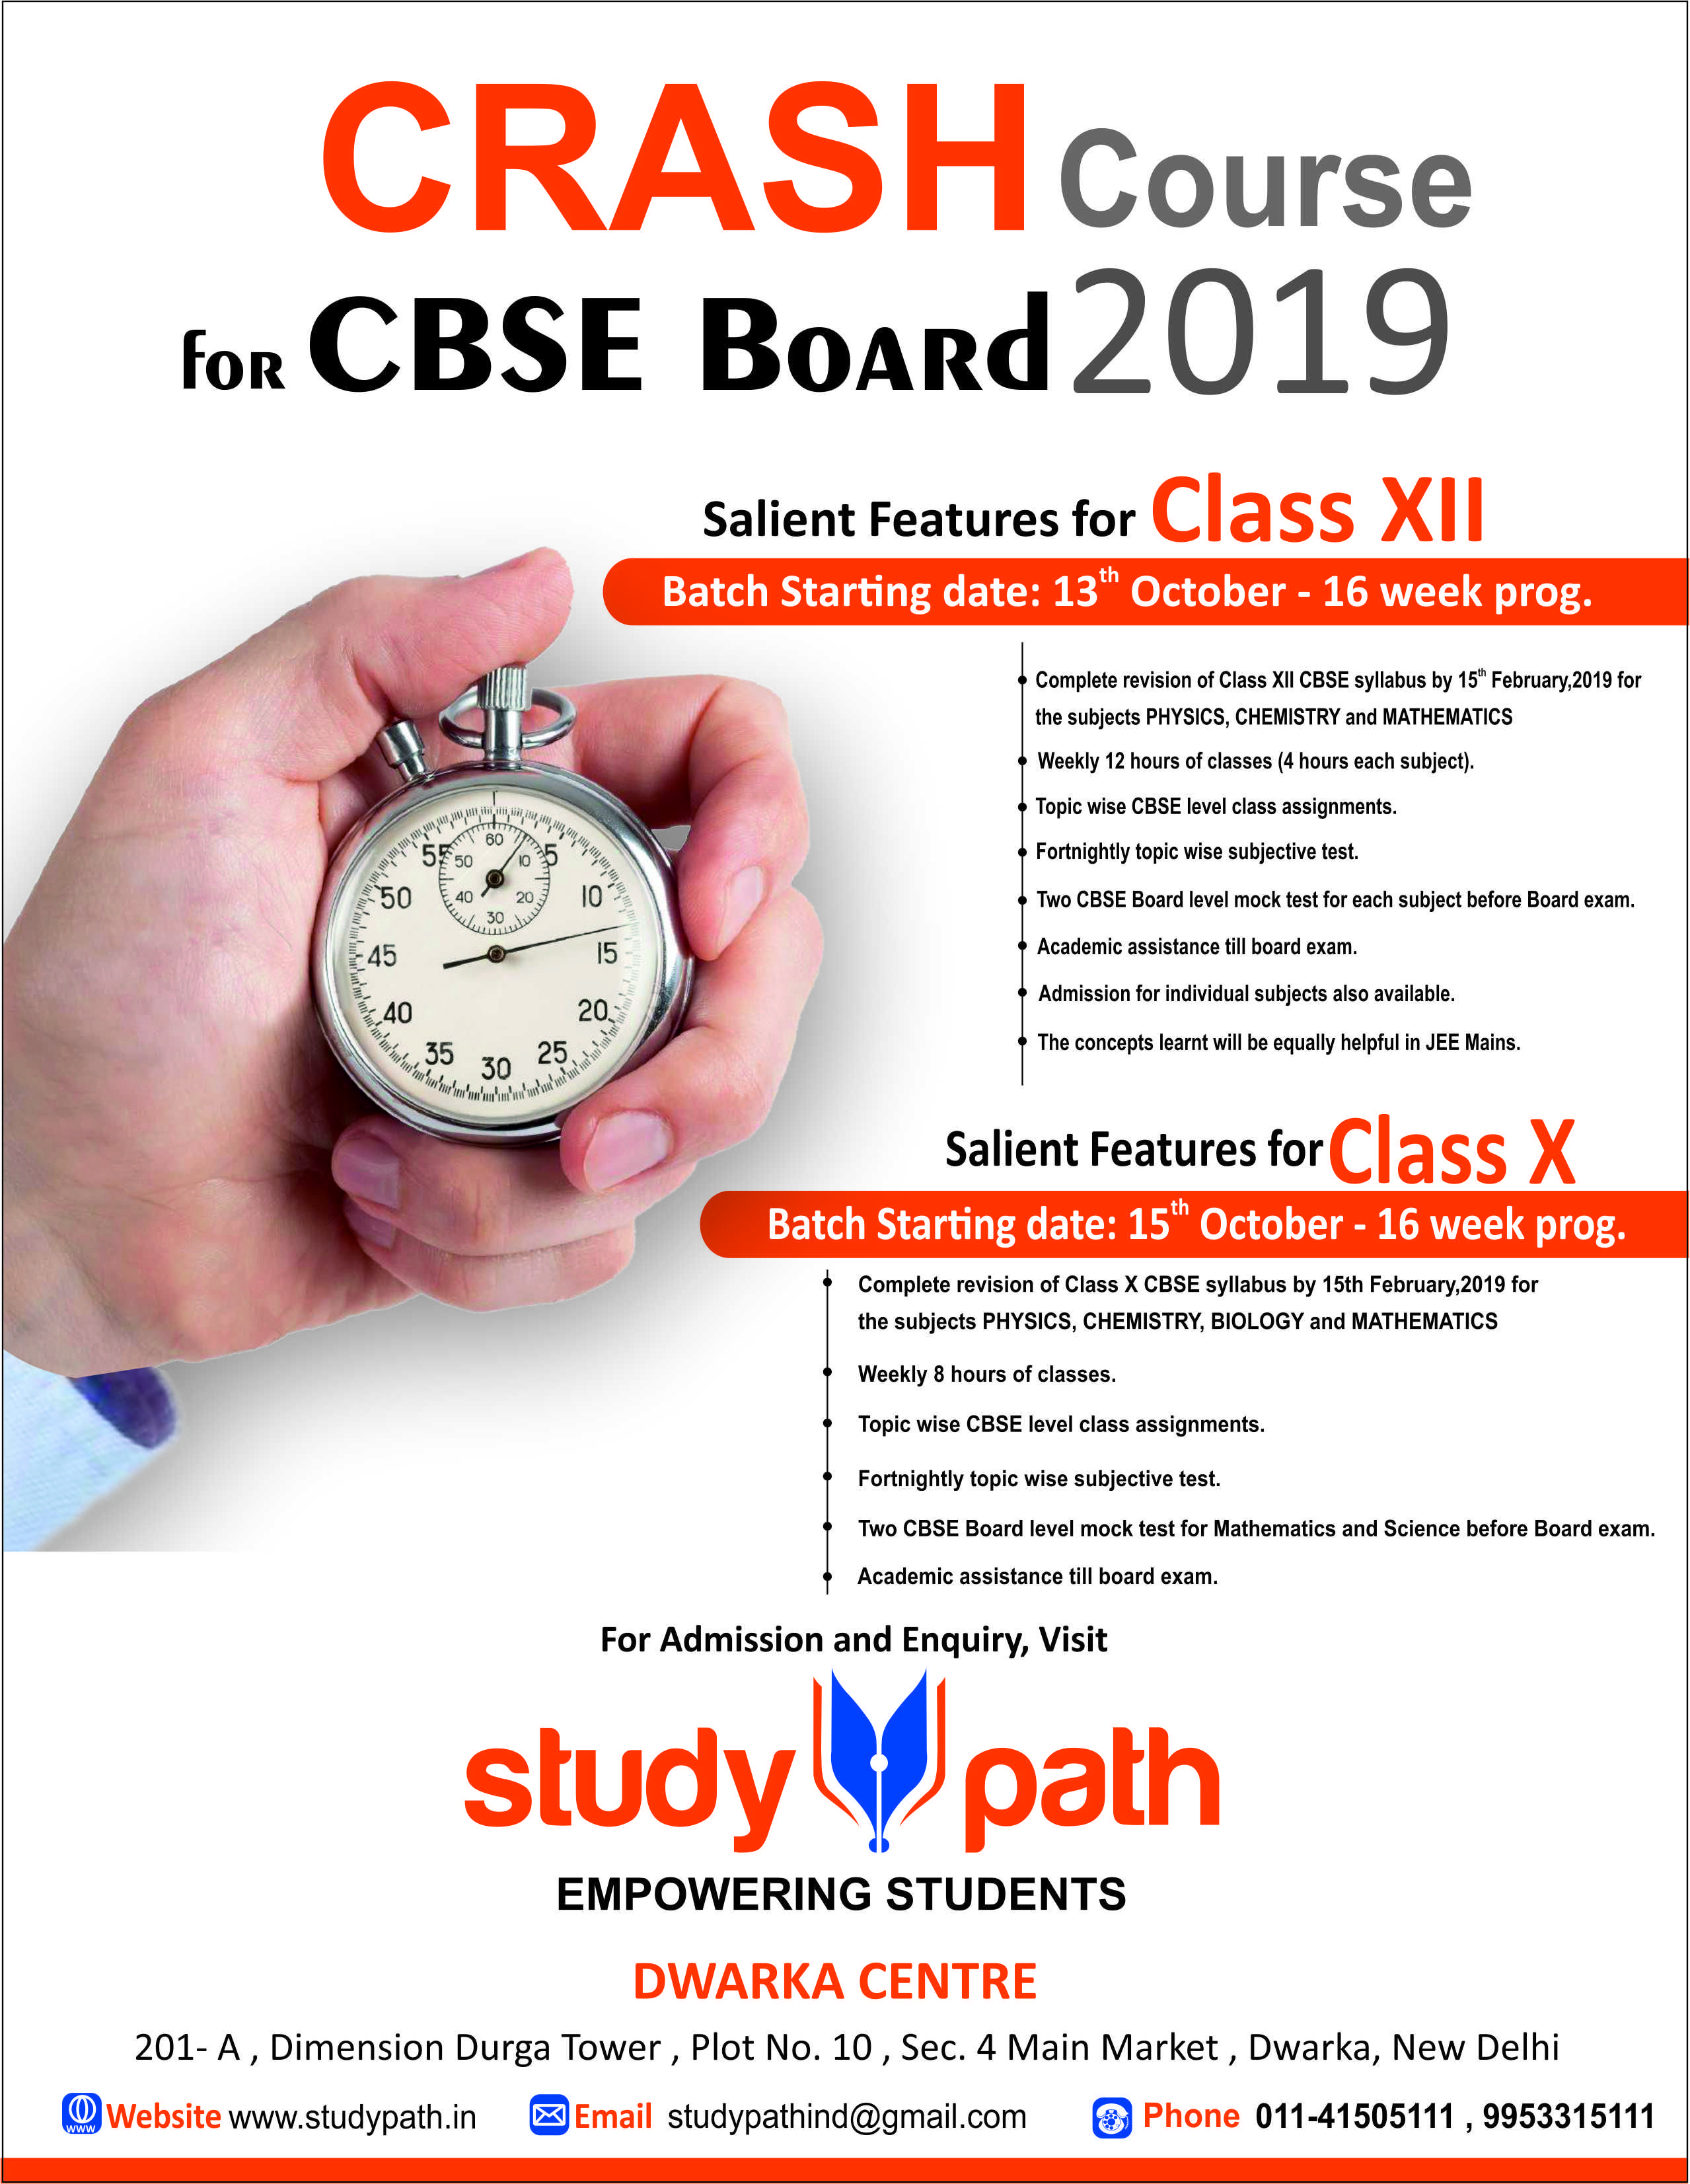 Study Path Is The League Of Highly Experienced Academicians With